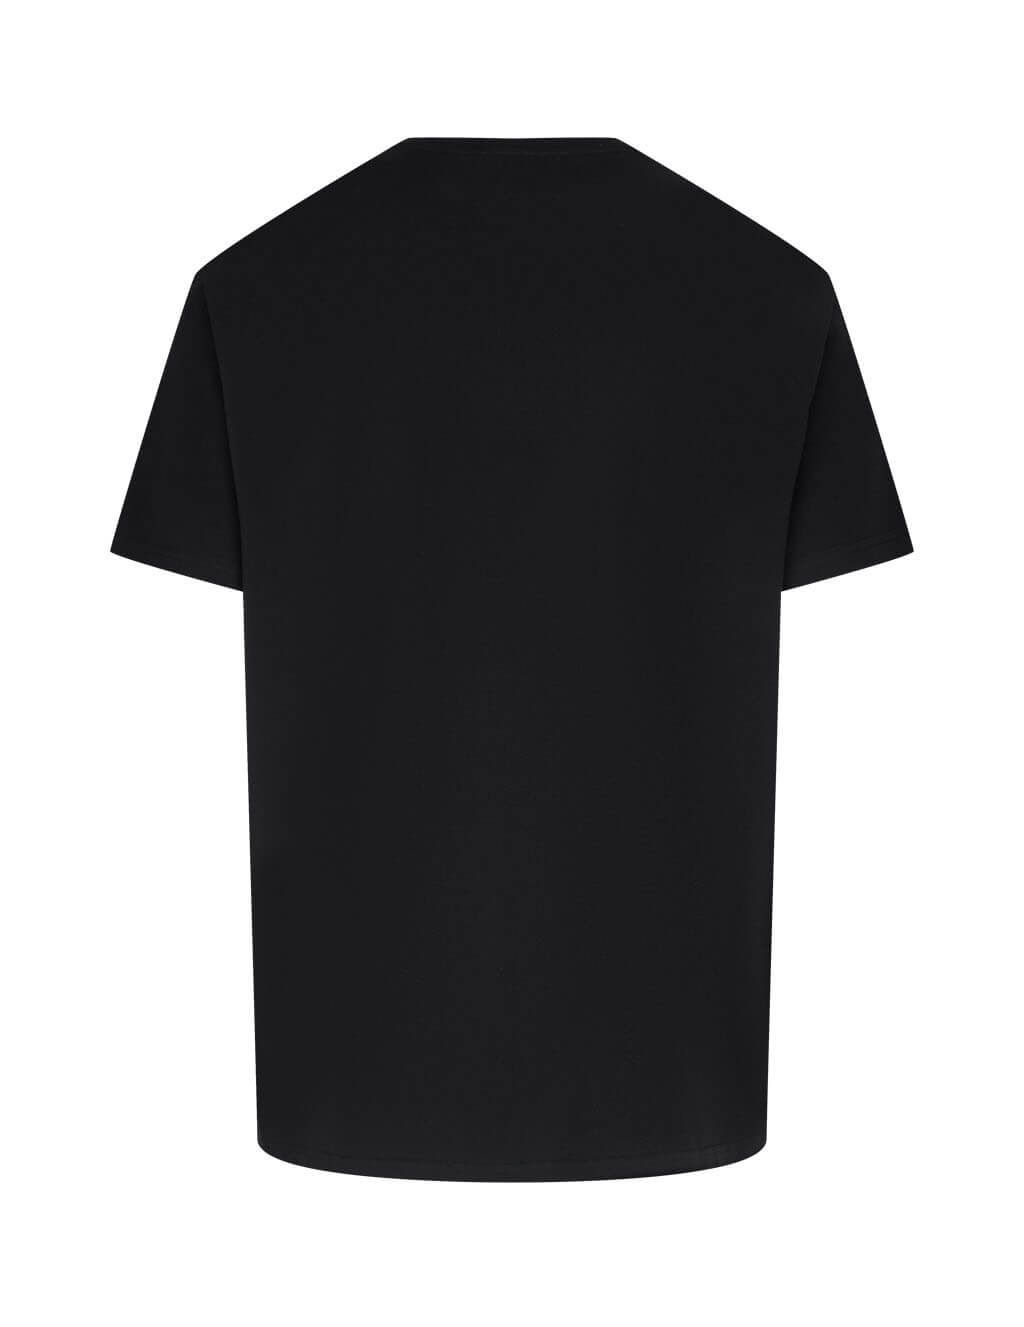 Men's Givenchy Latex Band T-Shirt in Black - BM70ZR3002-001